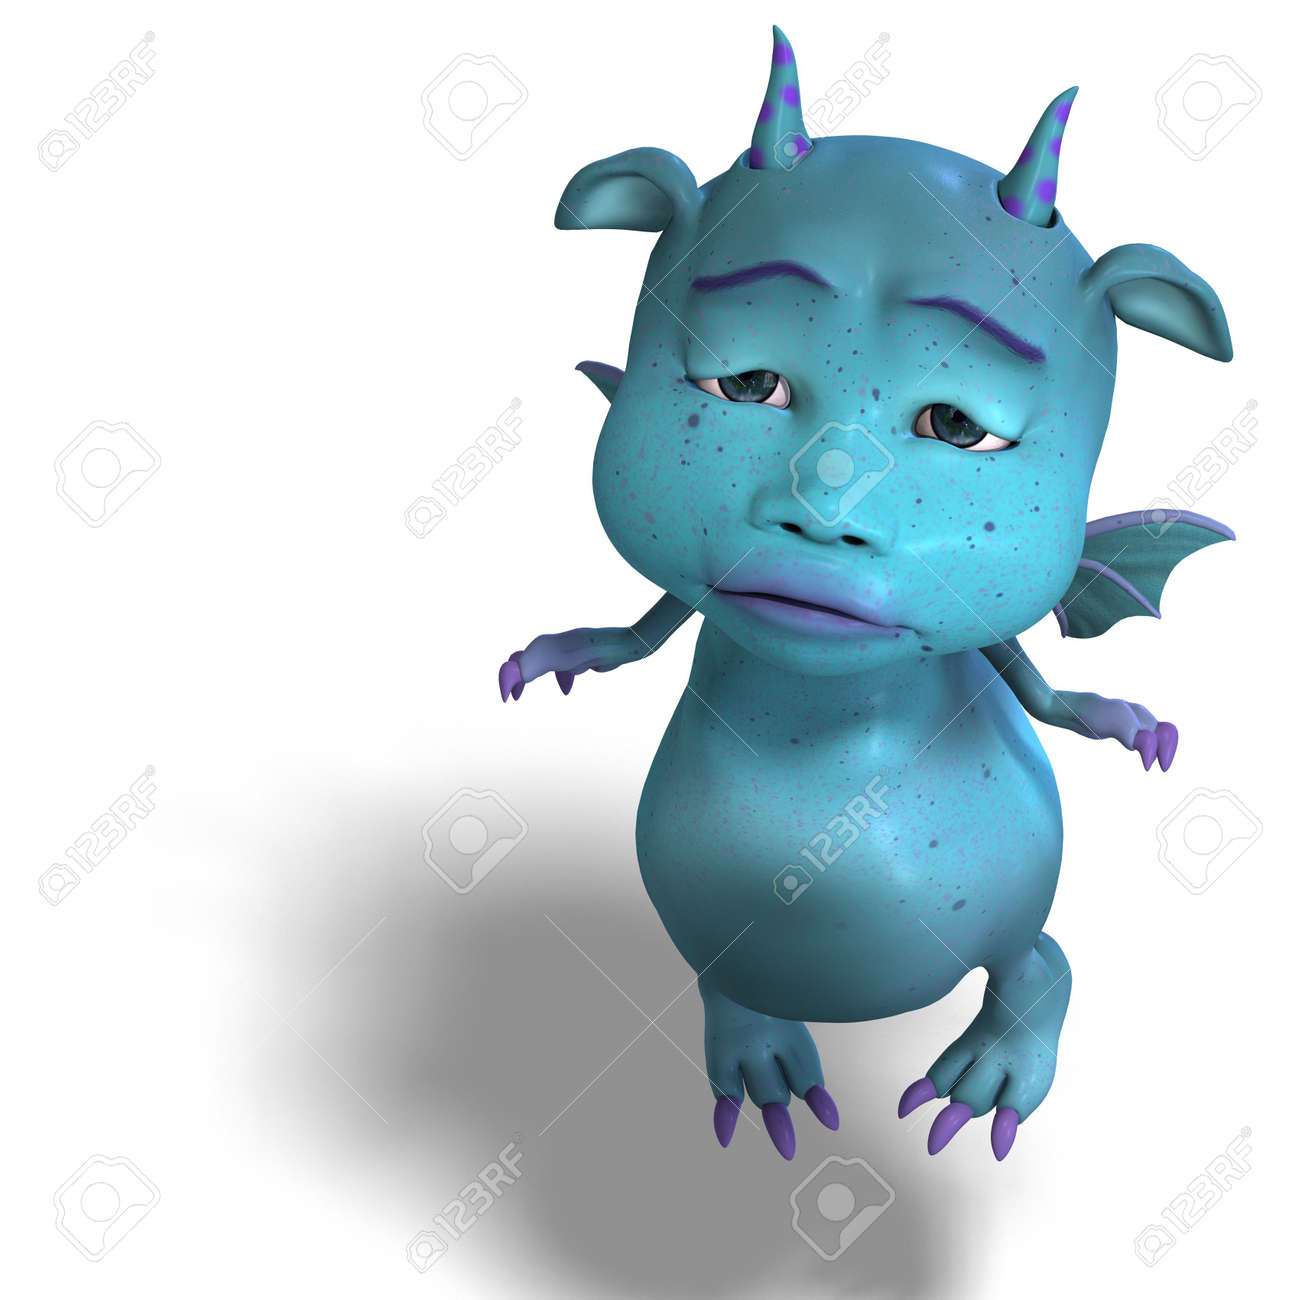 3d rendering of a little blue cute toon dragon devil with clipping